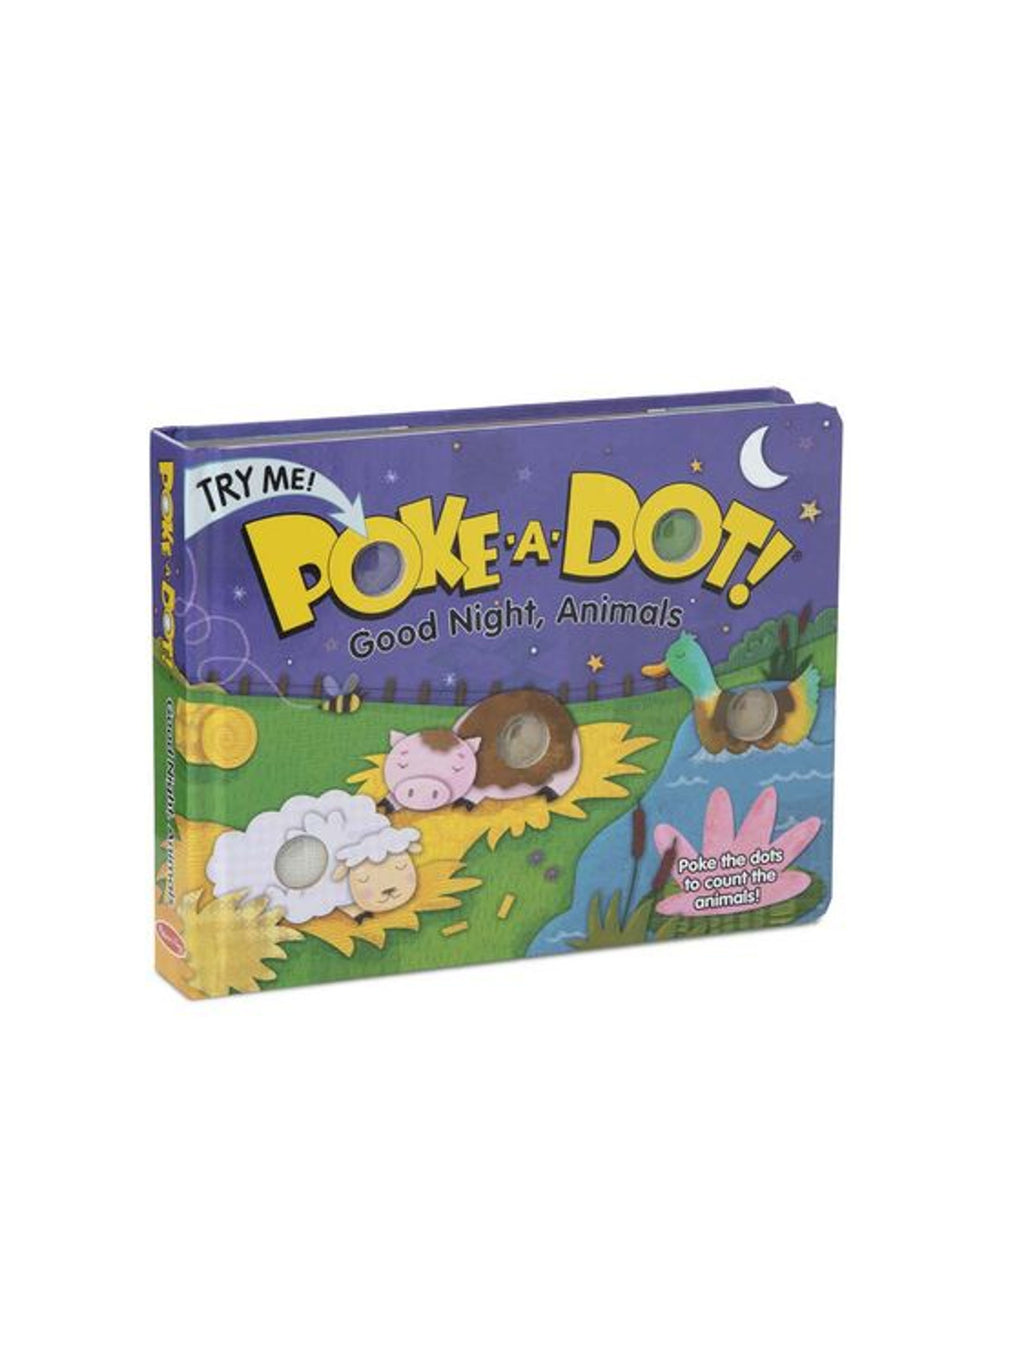 Good Night, Animals - Poke-A-Dot Book